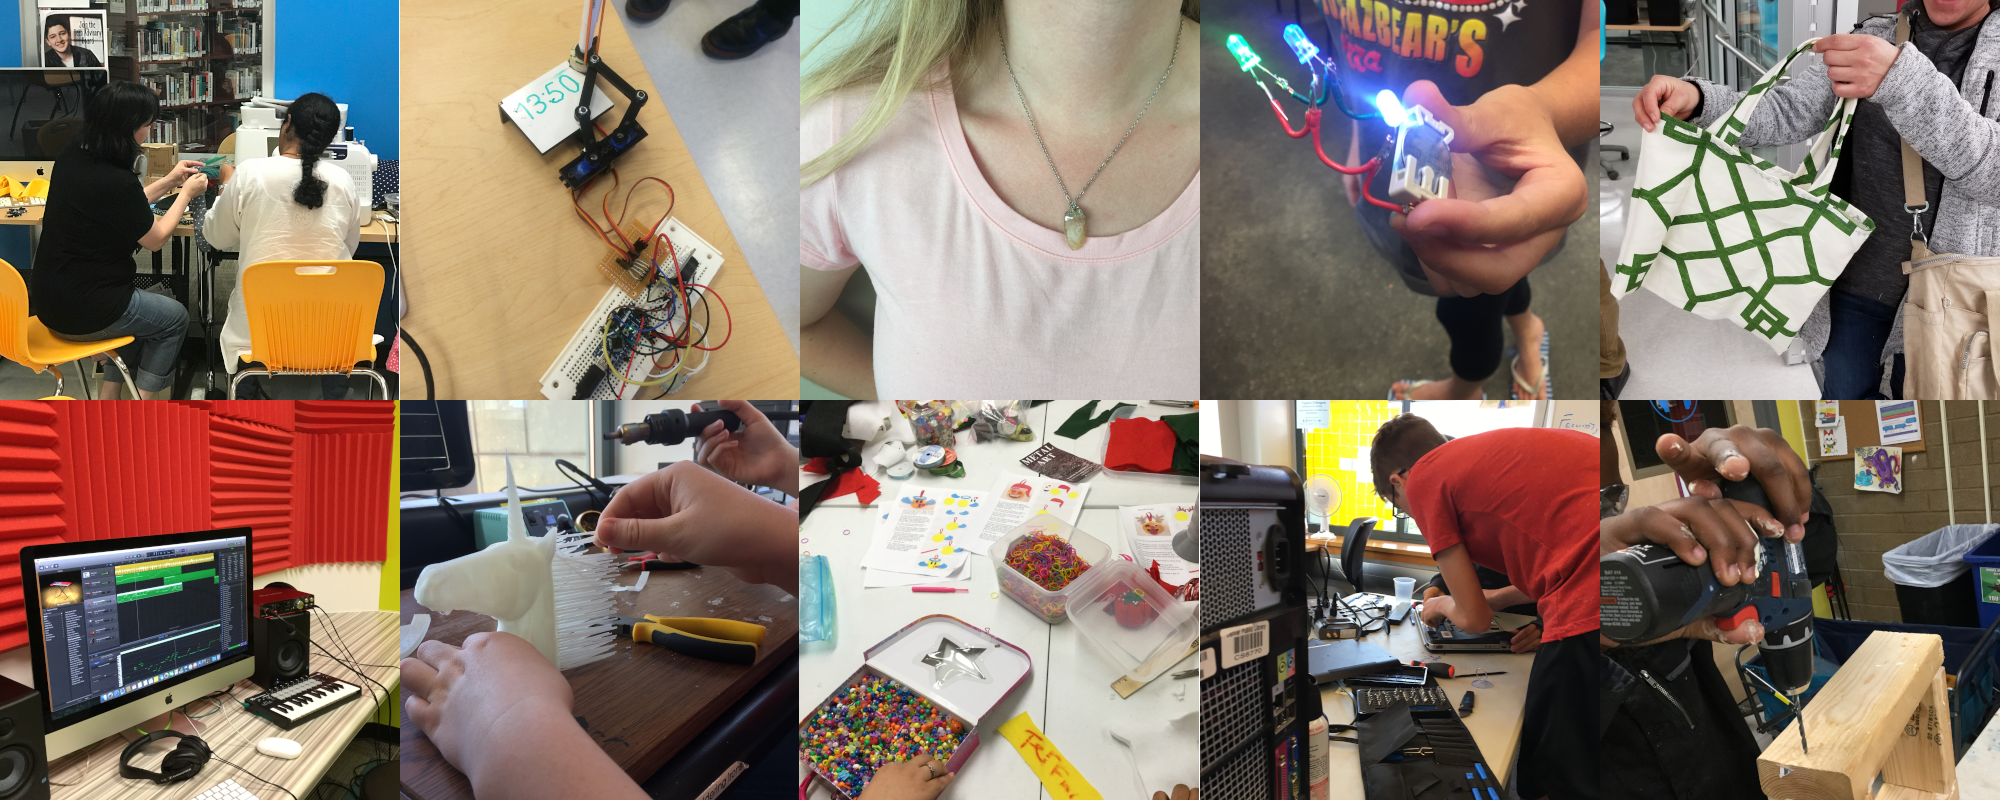 Examples of projects done in ideaLABs across Denver: sewing, repairs, 3D printing, beading, and more.